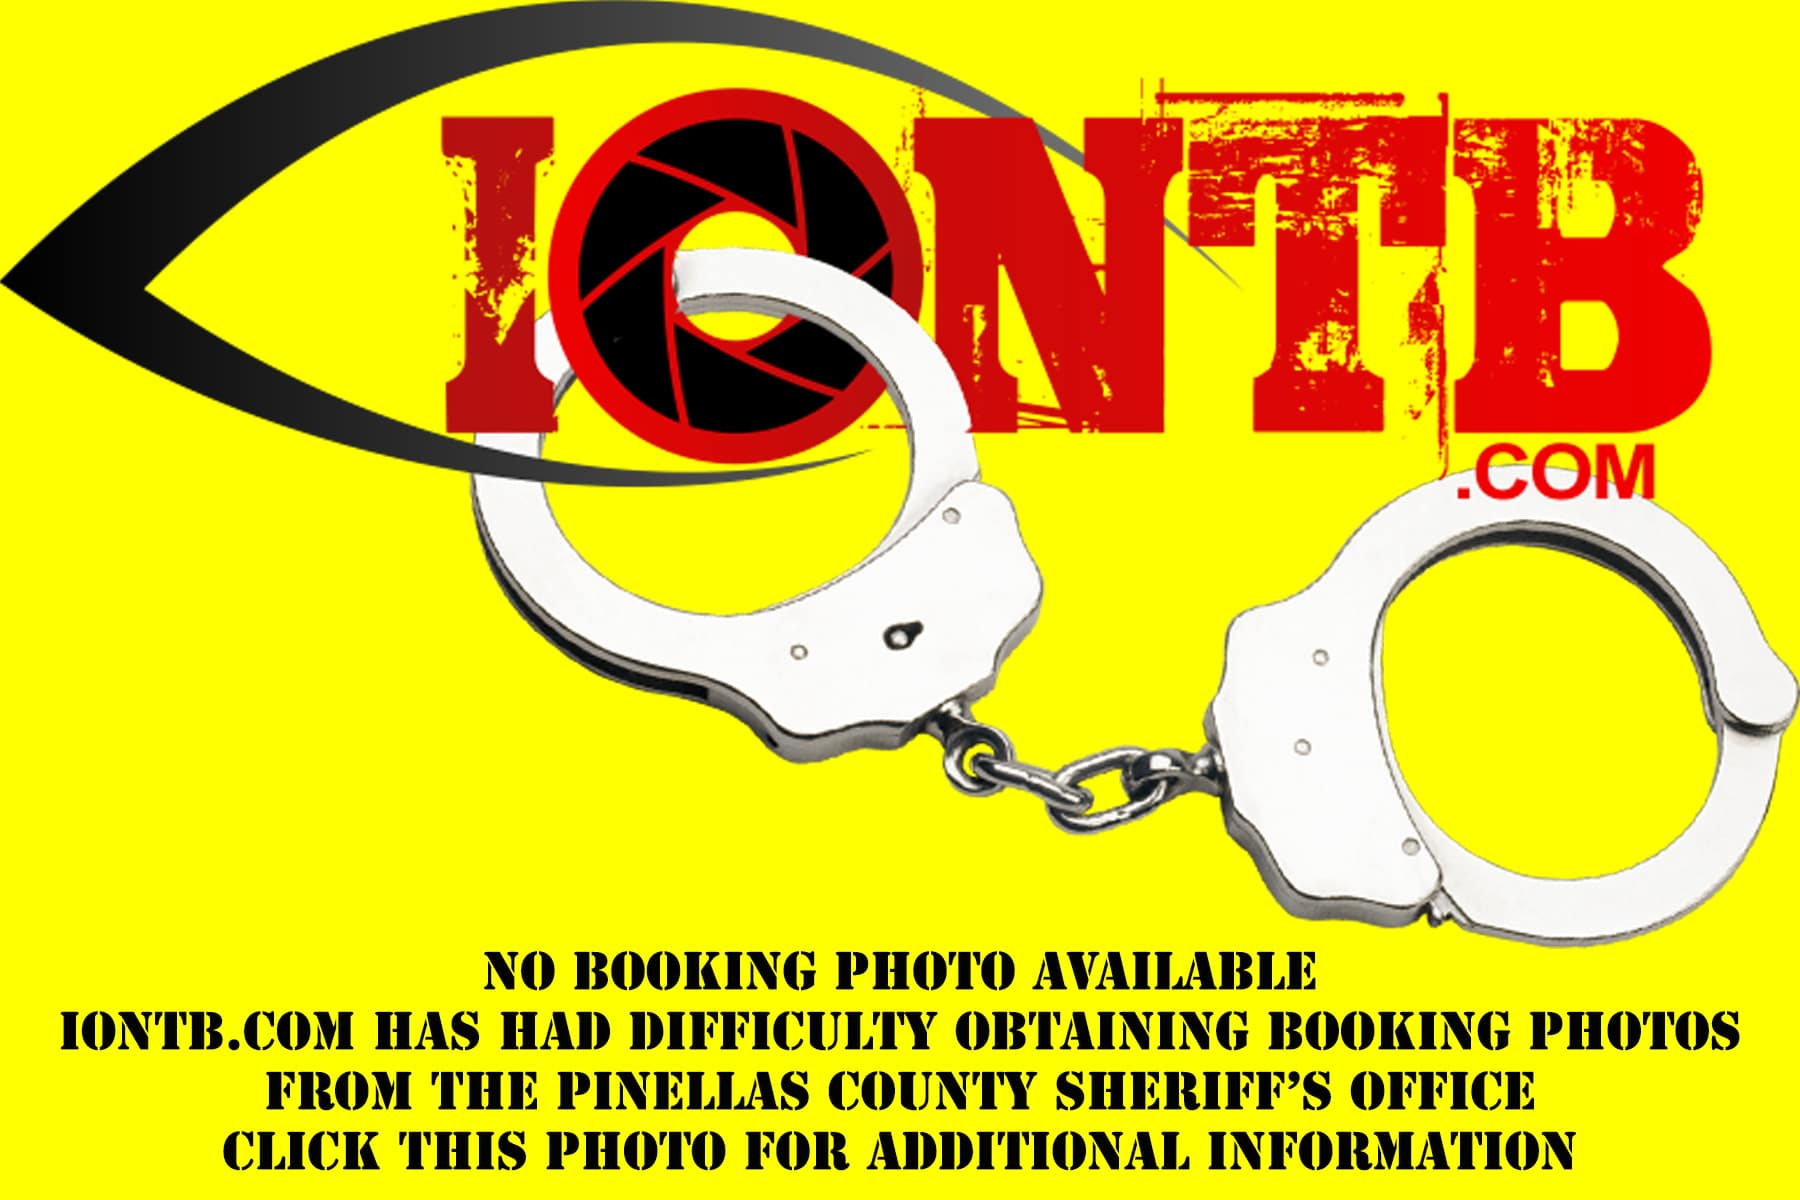 Booking photo not available to IONTB. Click for additional information.